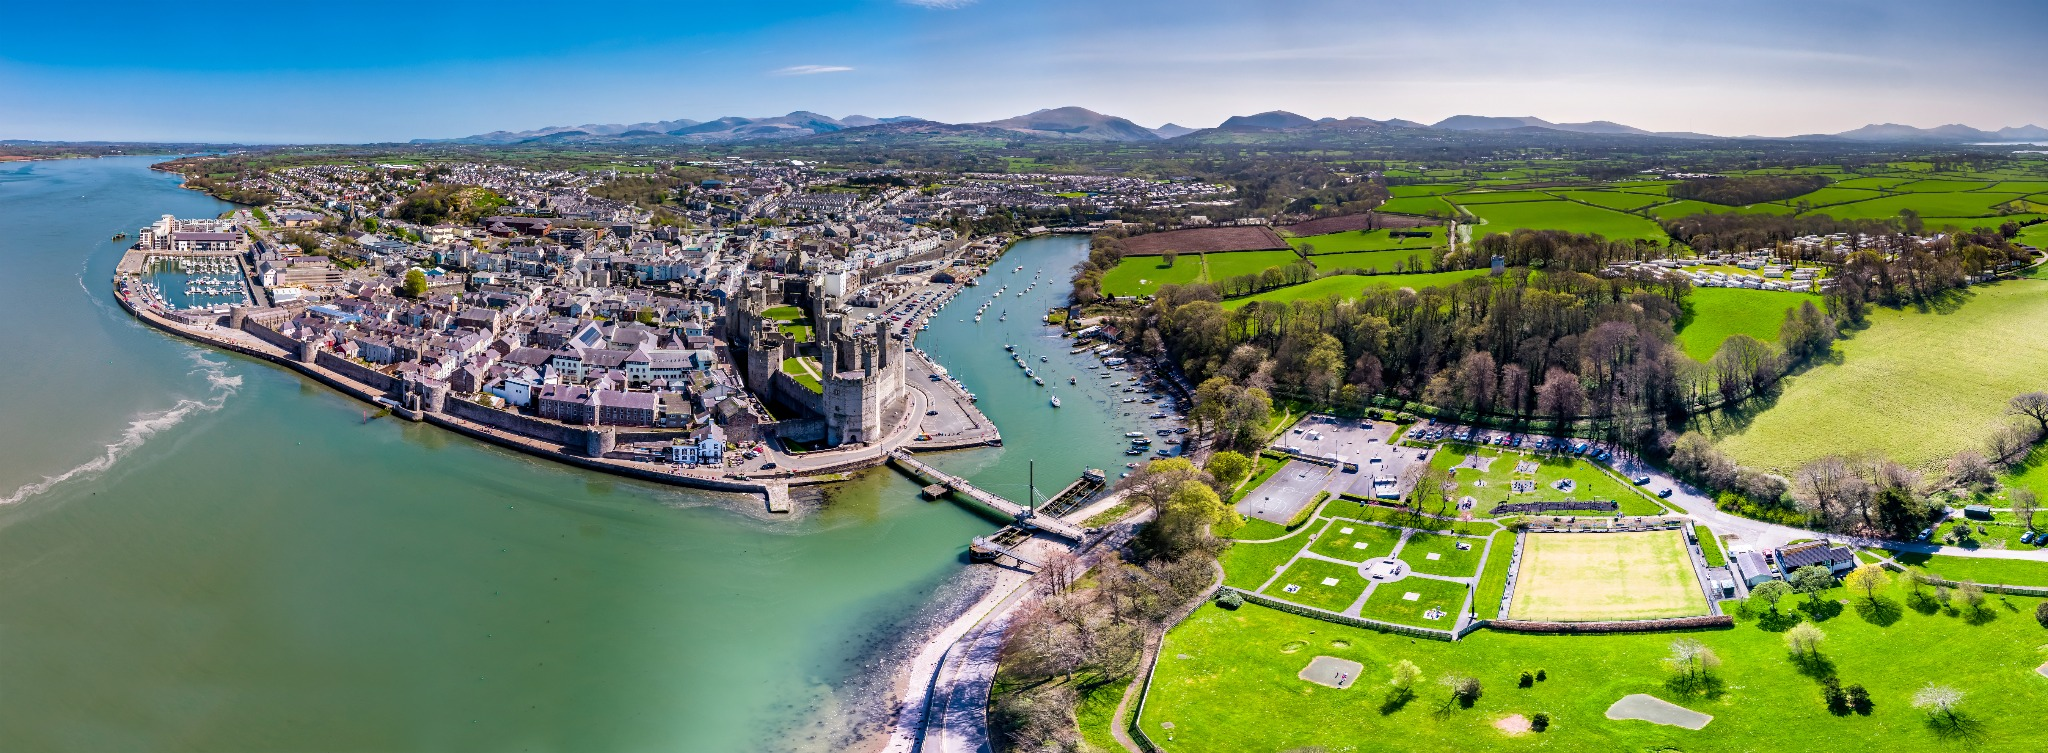 6 Beautiful Cities in Wales You Have to Visit